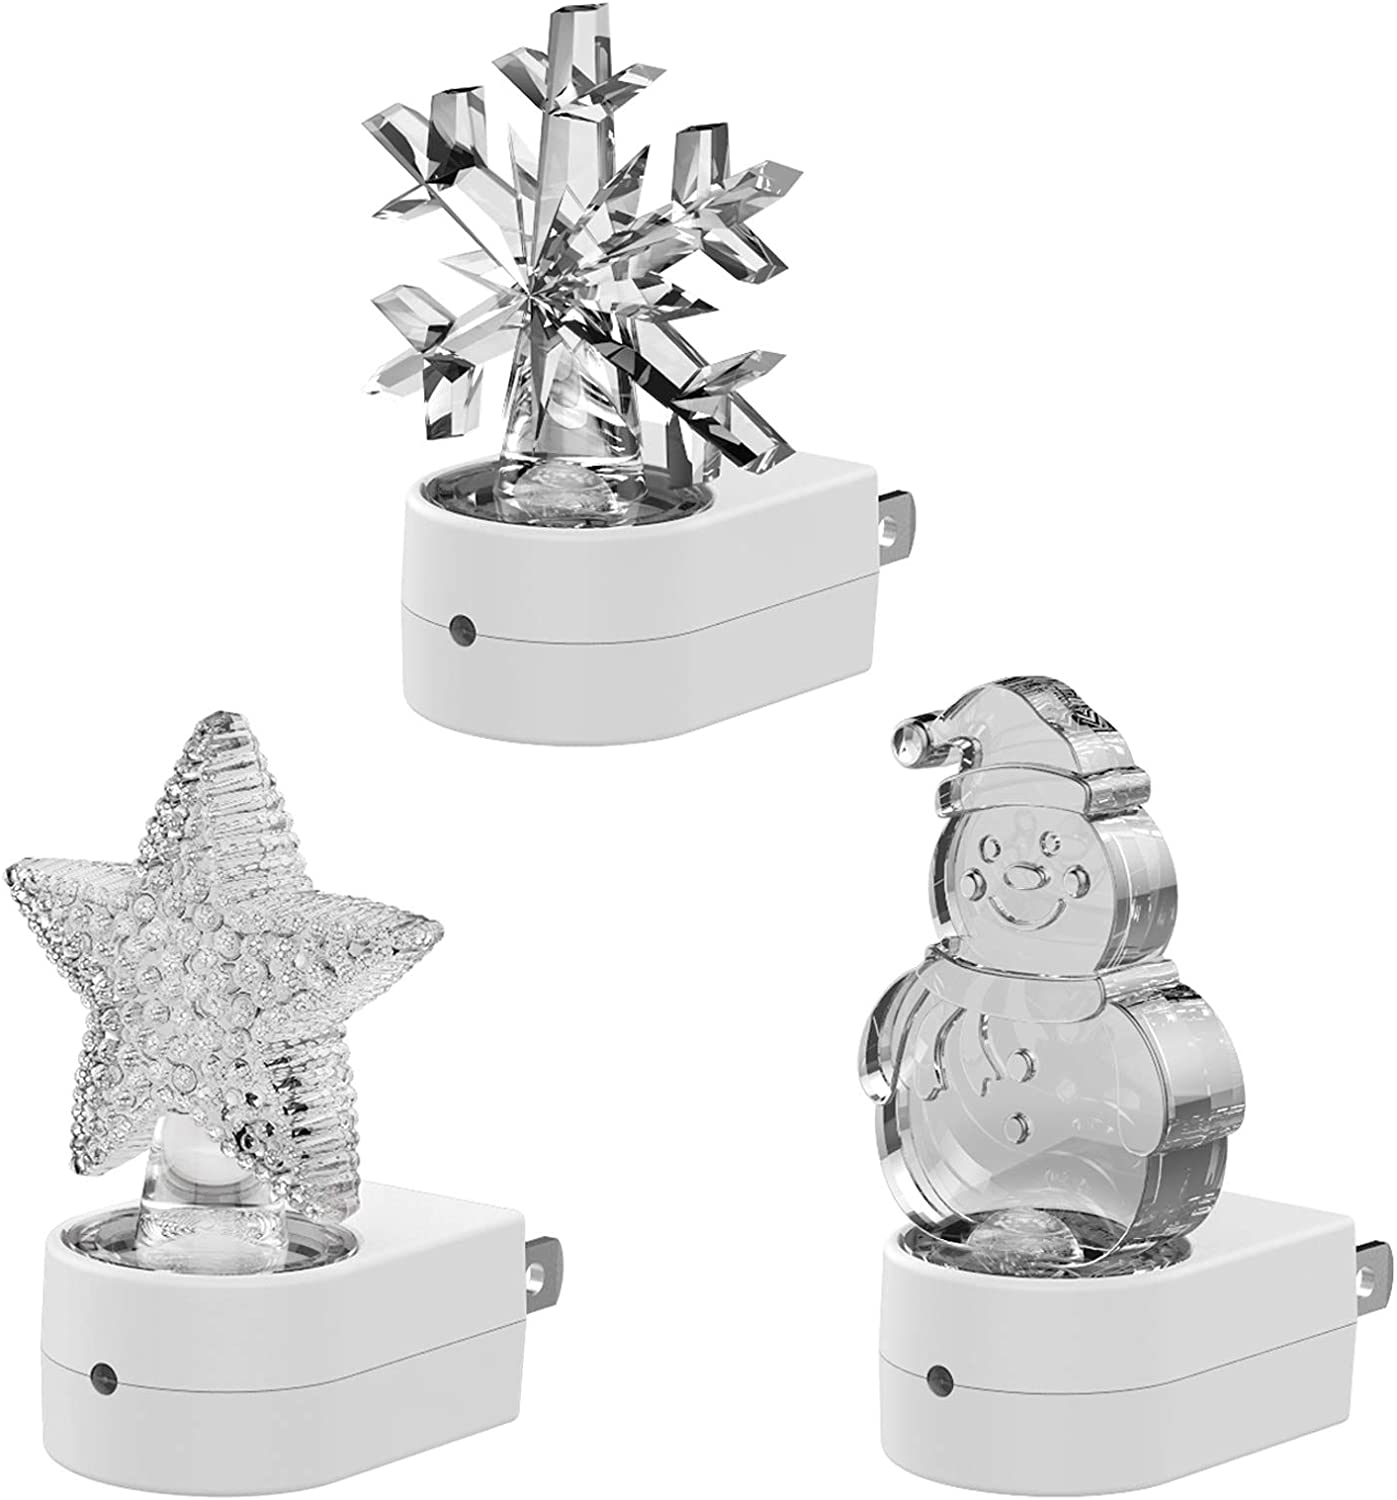 Night Lights Plug-into-Wall for Kids Christmas – Cute LED Lamp Plug-in with Light Sensor & Manual Switch, Decoration & Gift, for Nursery, Bathroom A Snowman, A Twinkle Star, A Snowflake